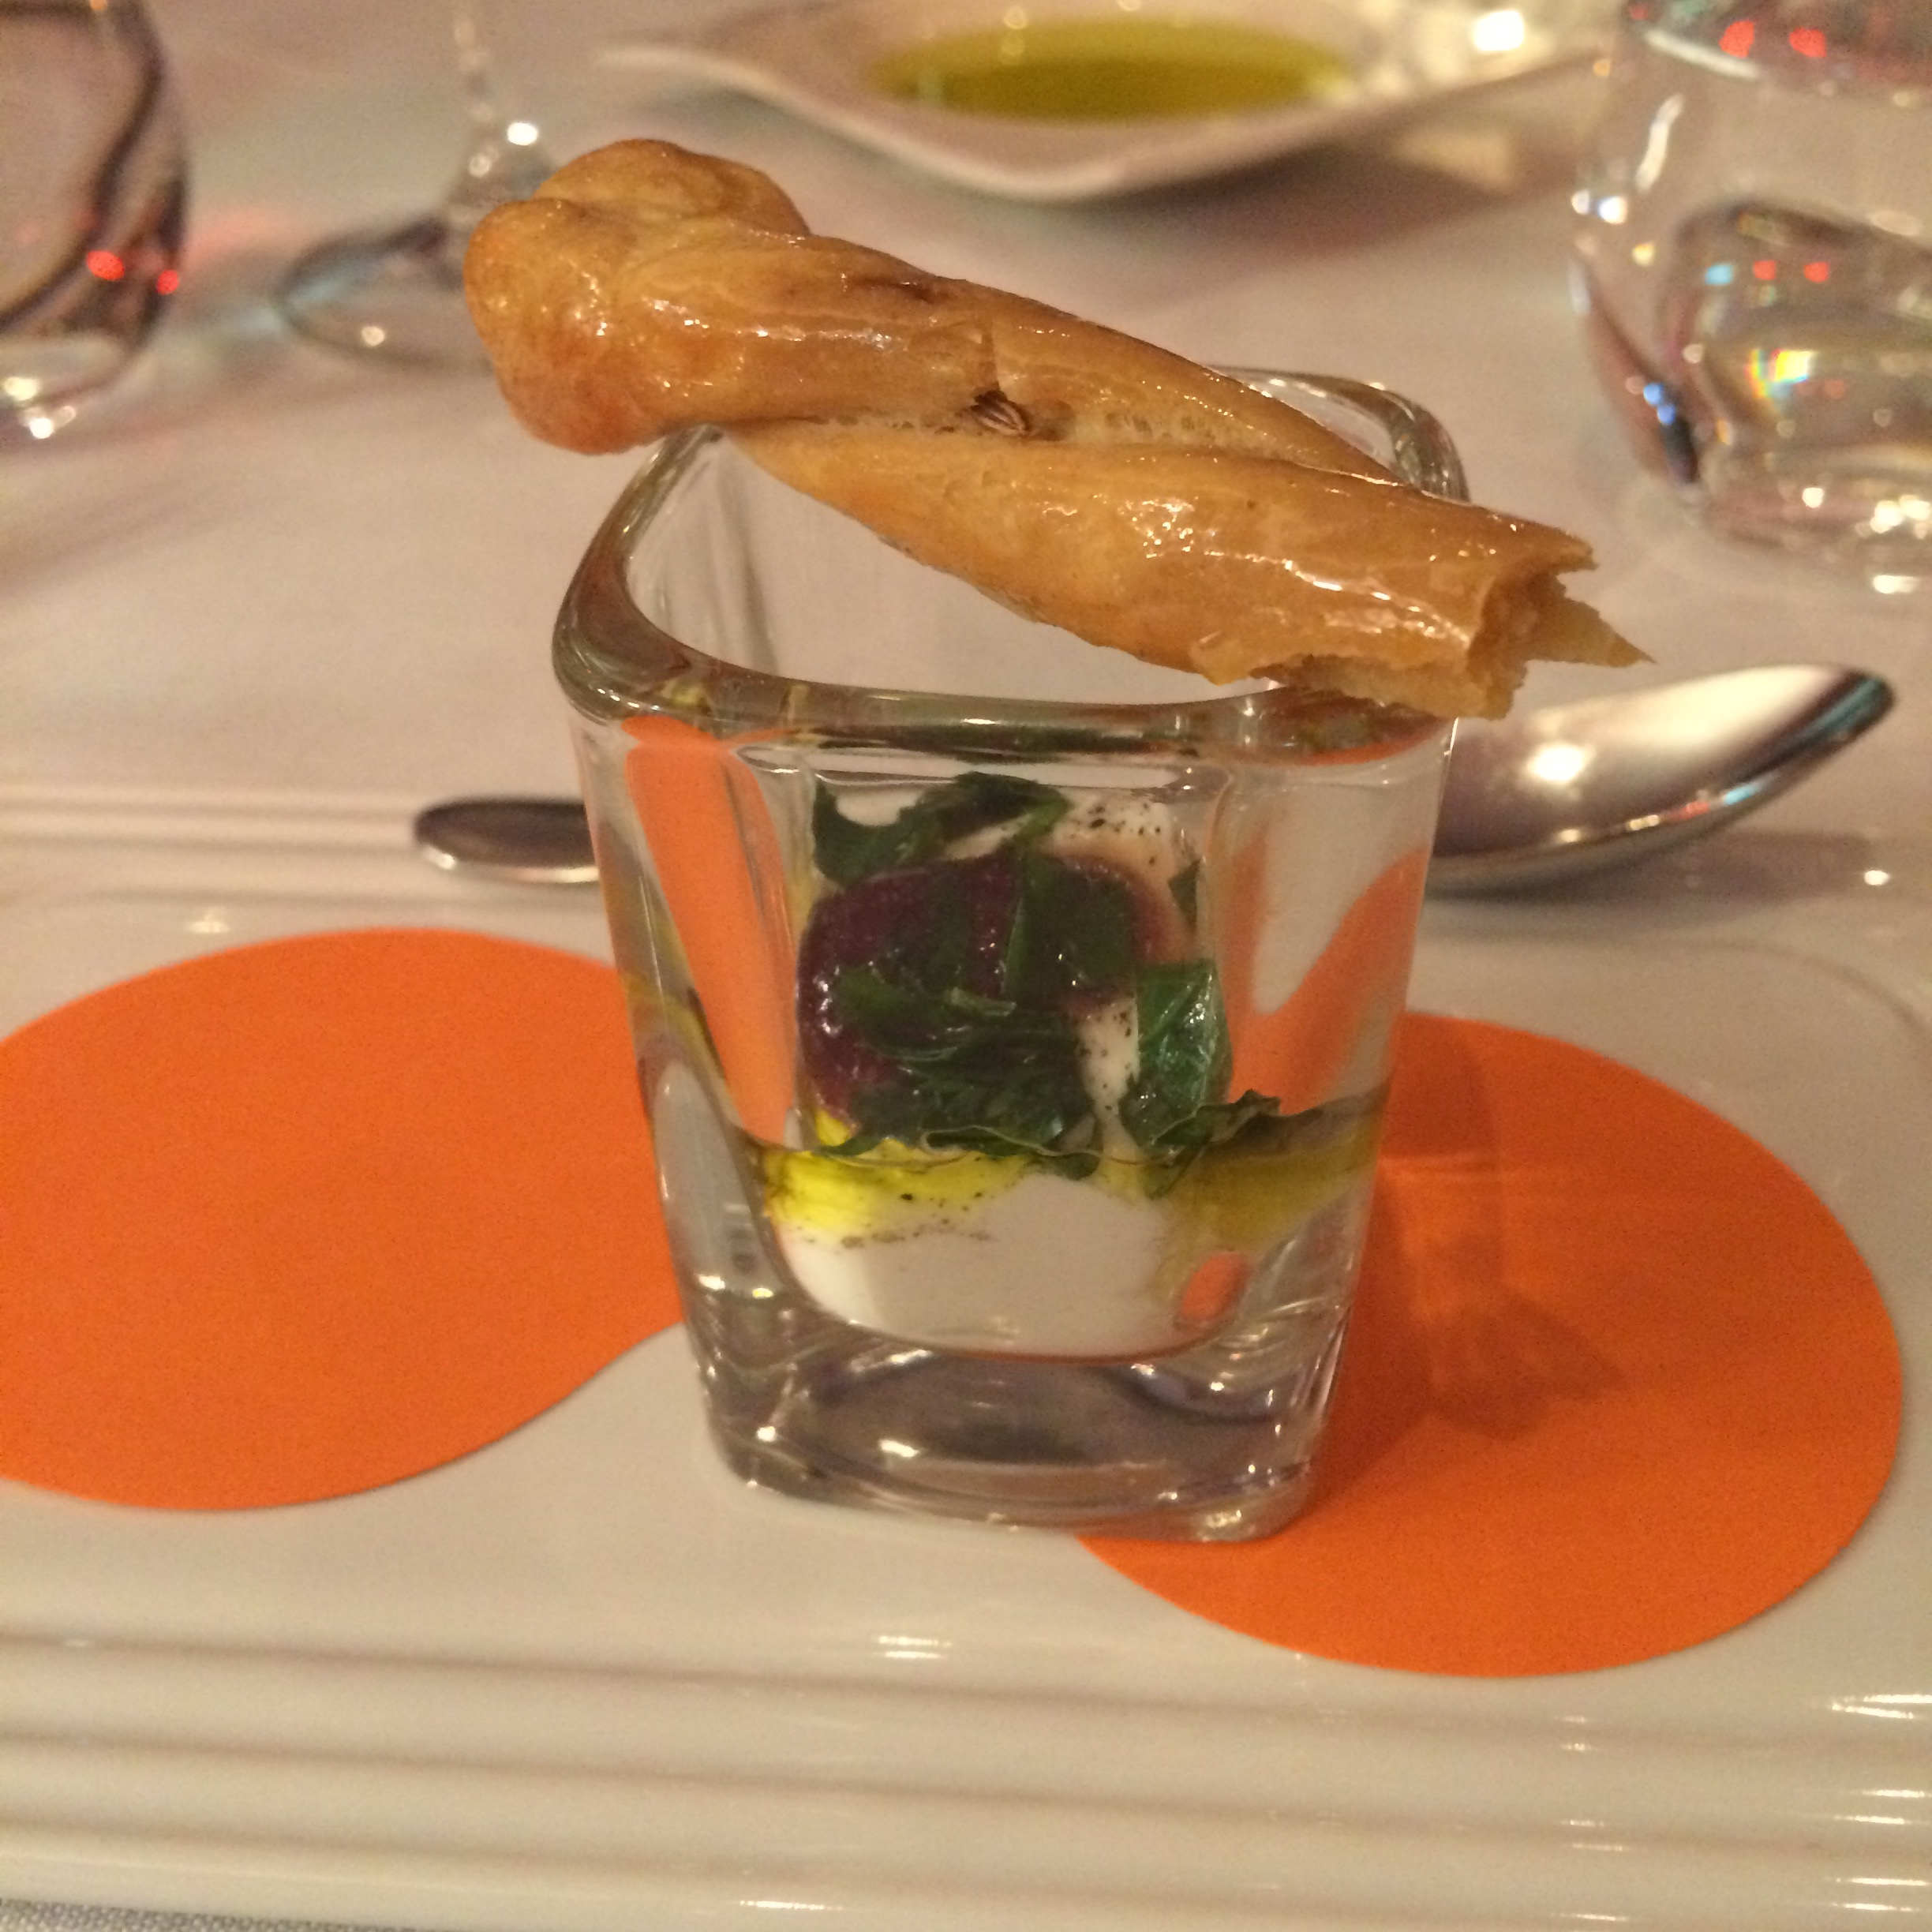 Goats cheese with quince paste and truffle oil and basil,served with a warm crostini stick